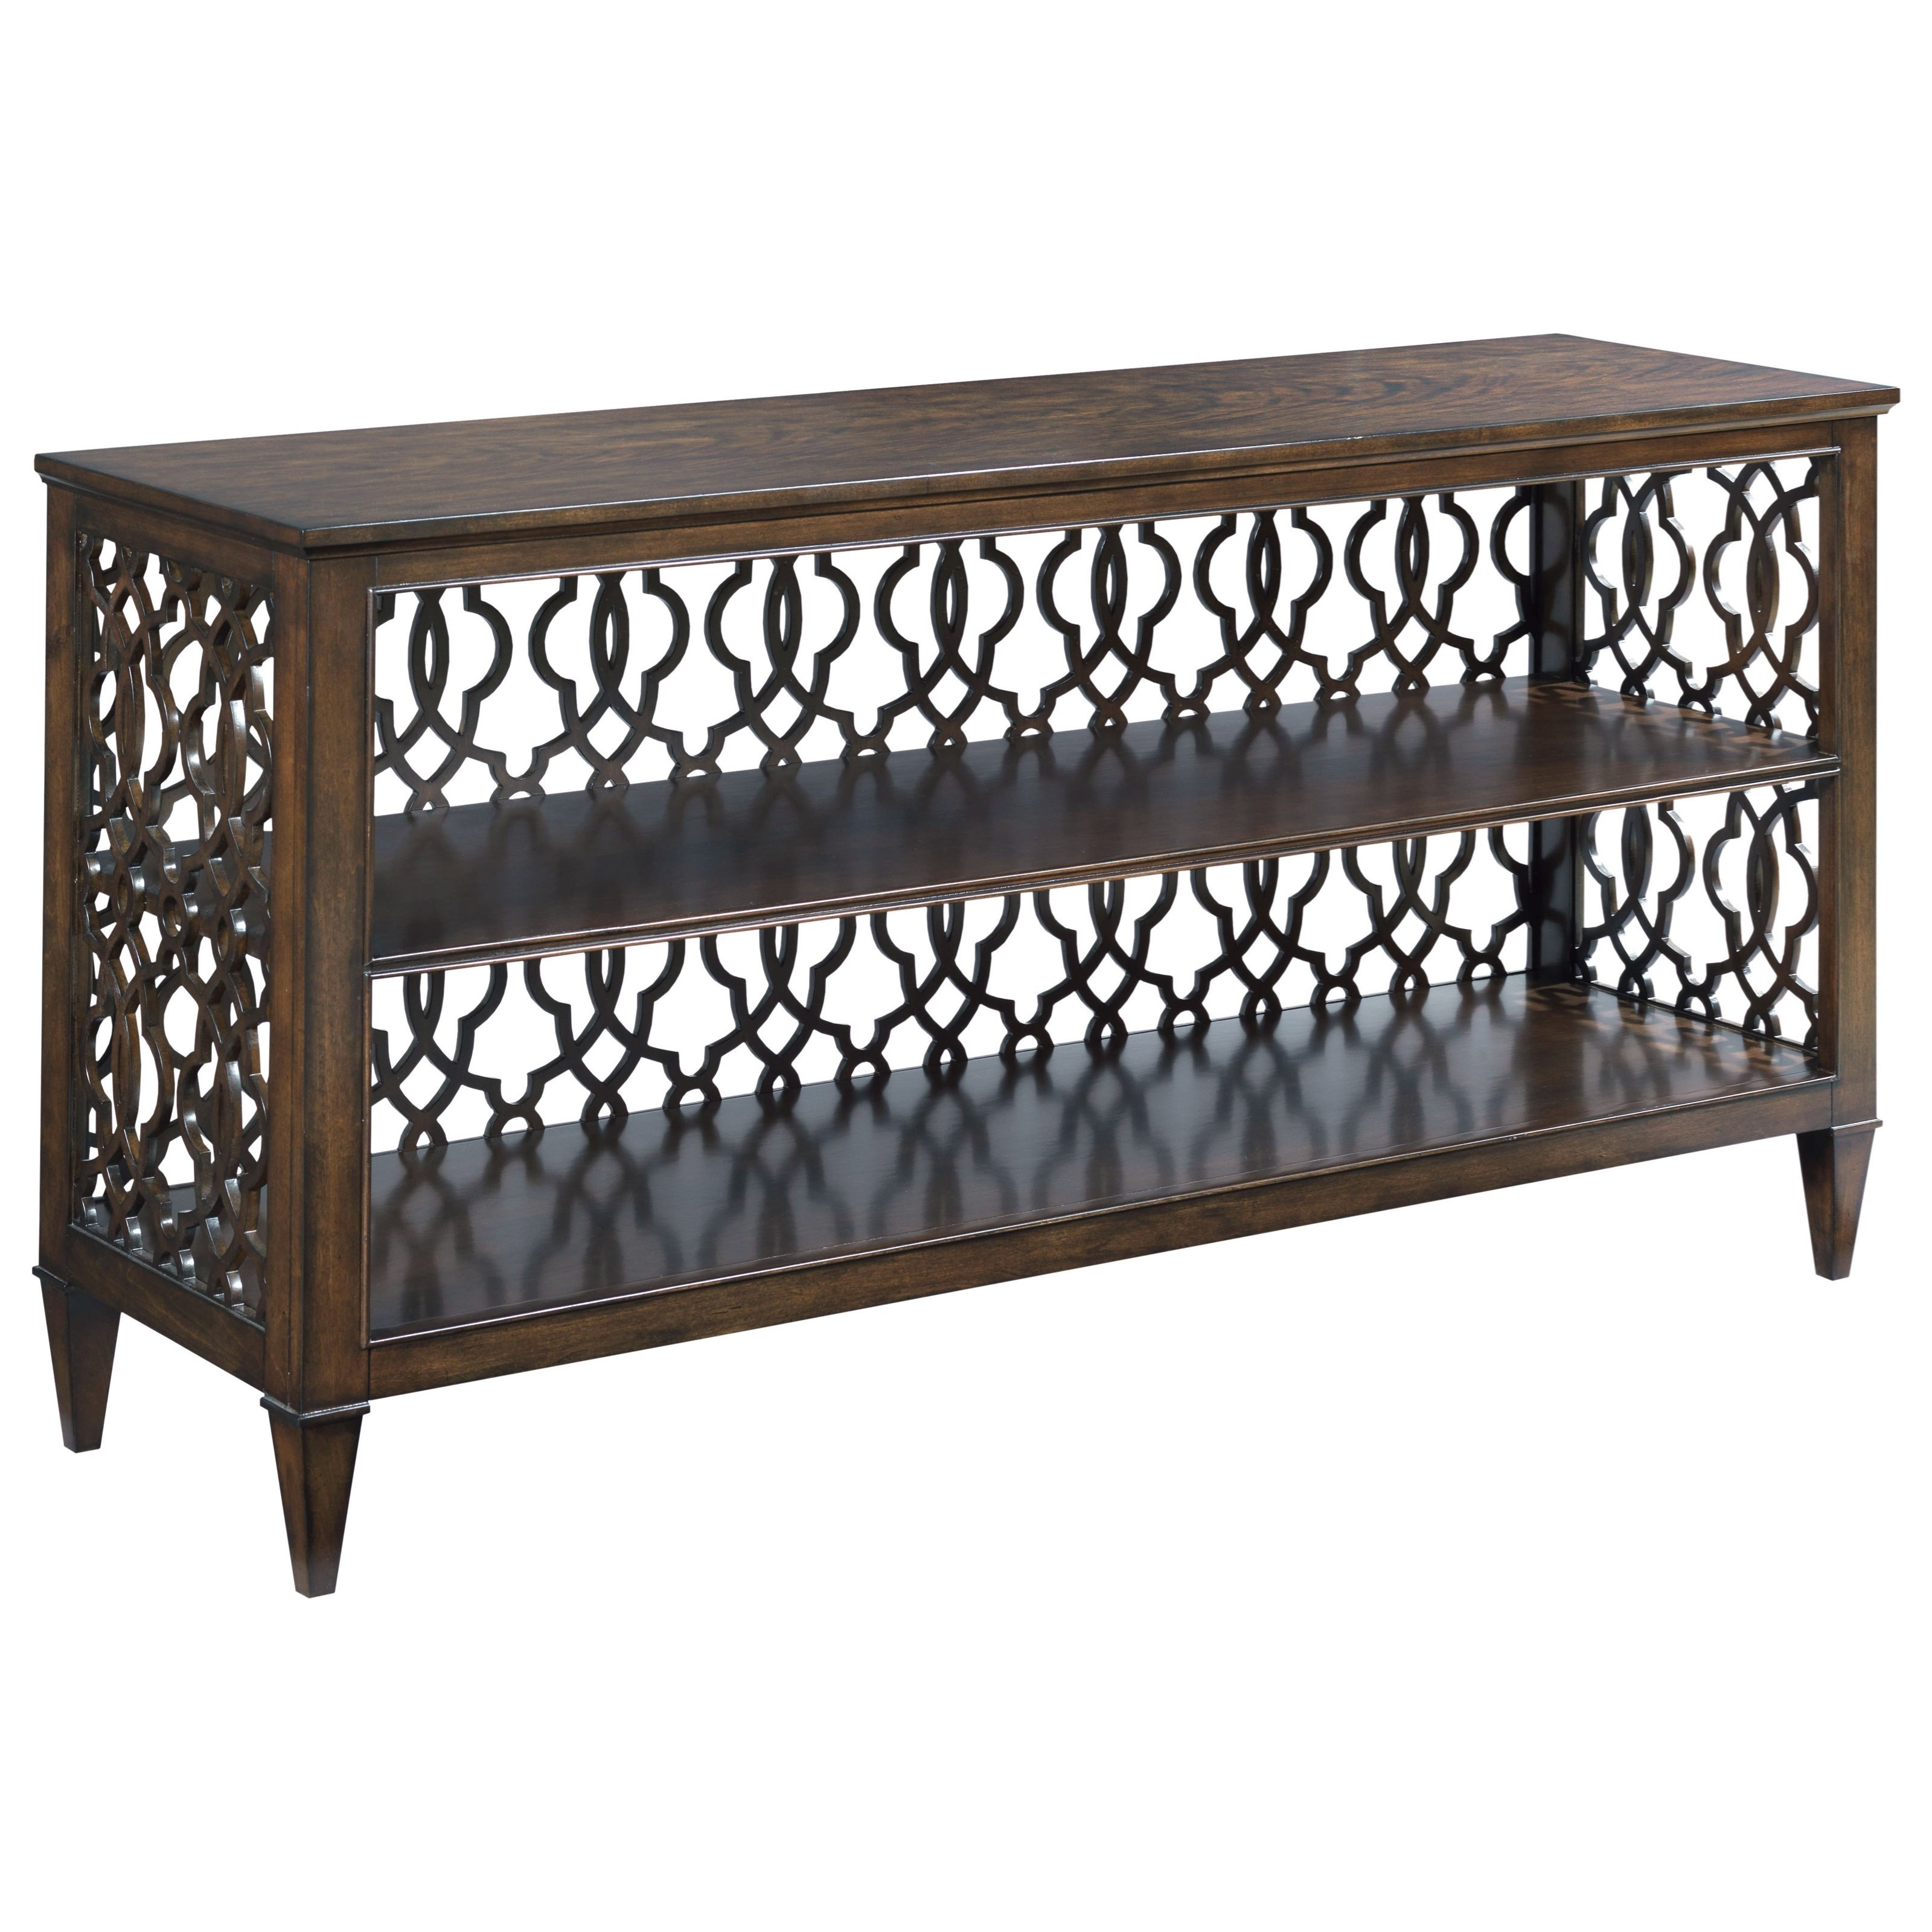 Ardwick Ardwick Sofa Table by Hammary at Morris Home